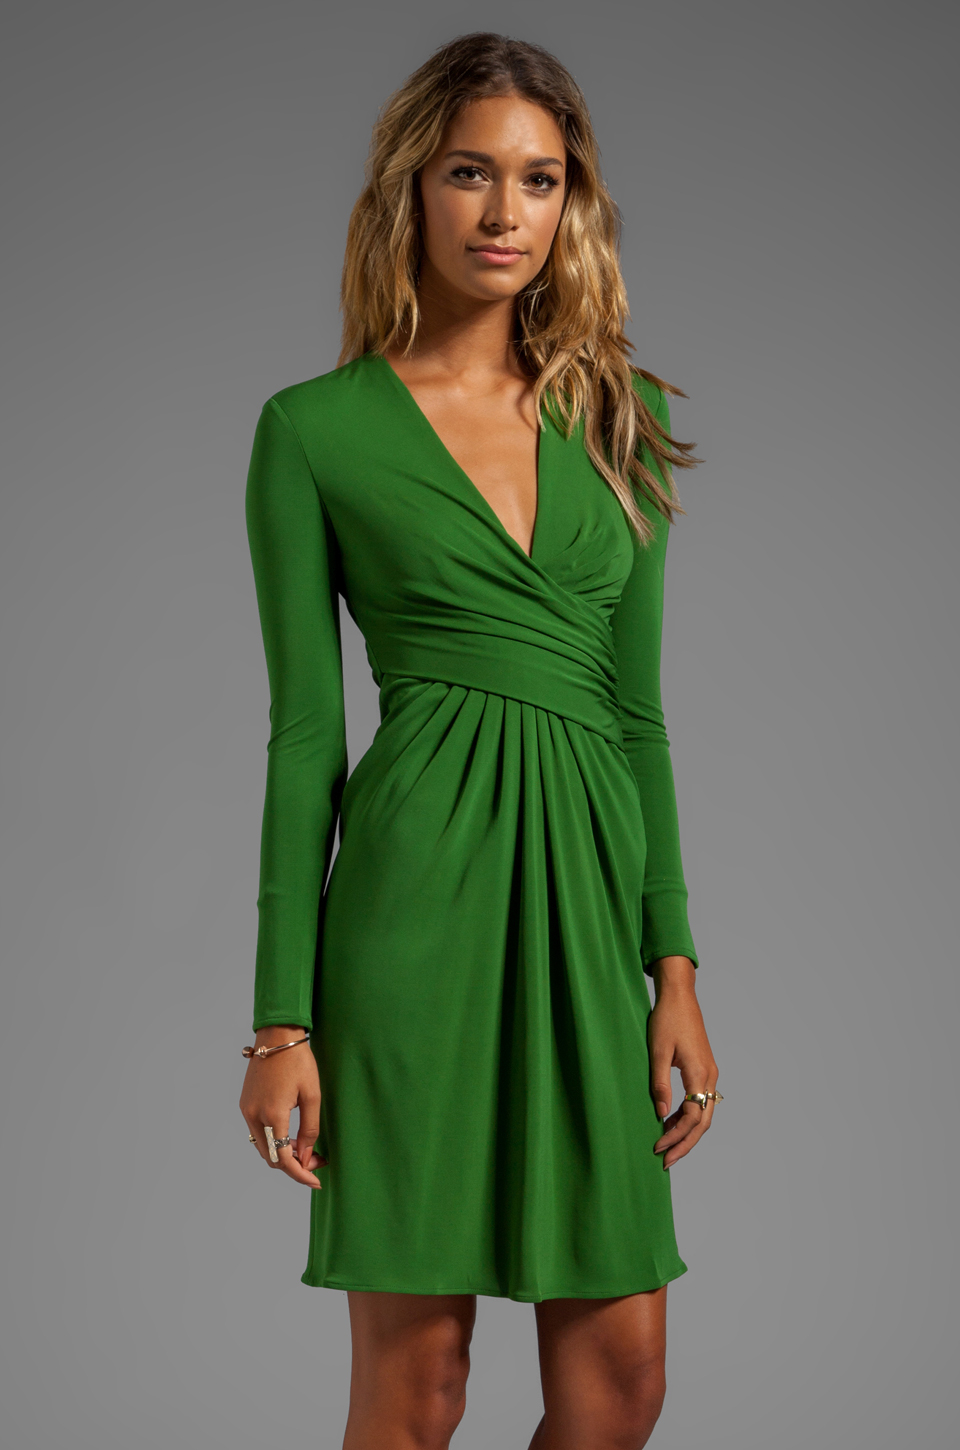 Lyst Issa Long Sleeve Short Dress In Green In Green